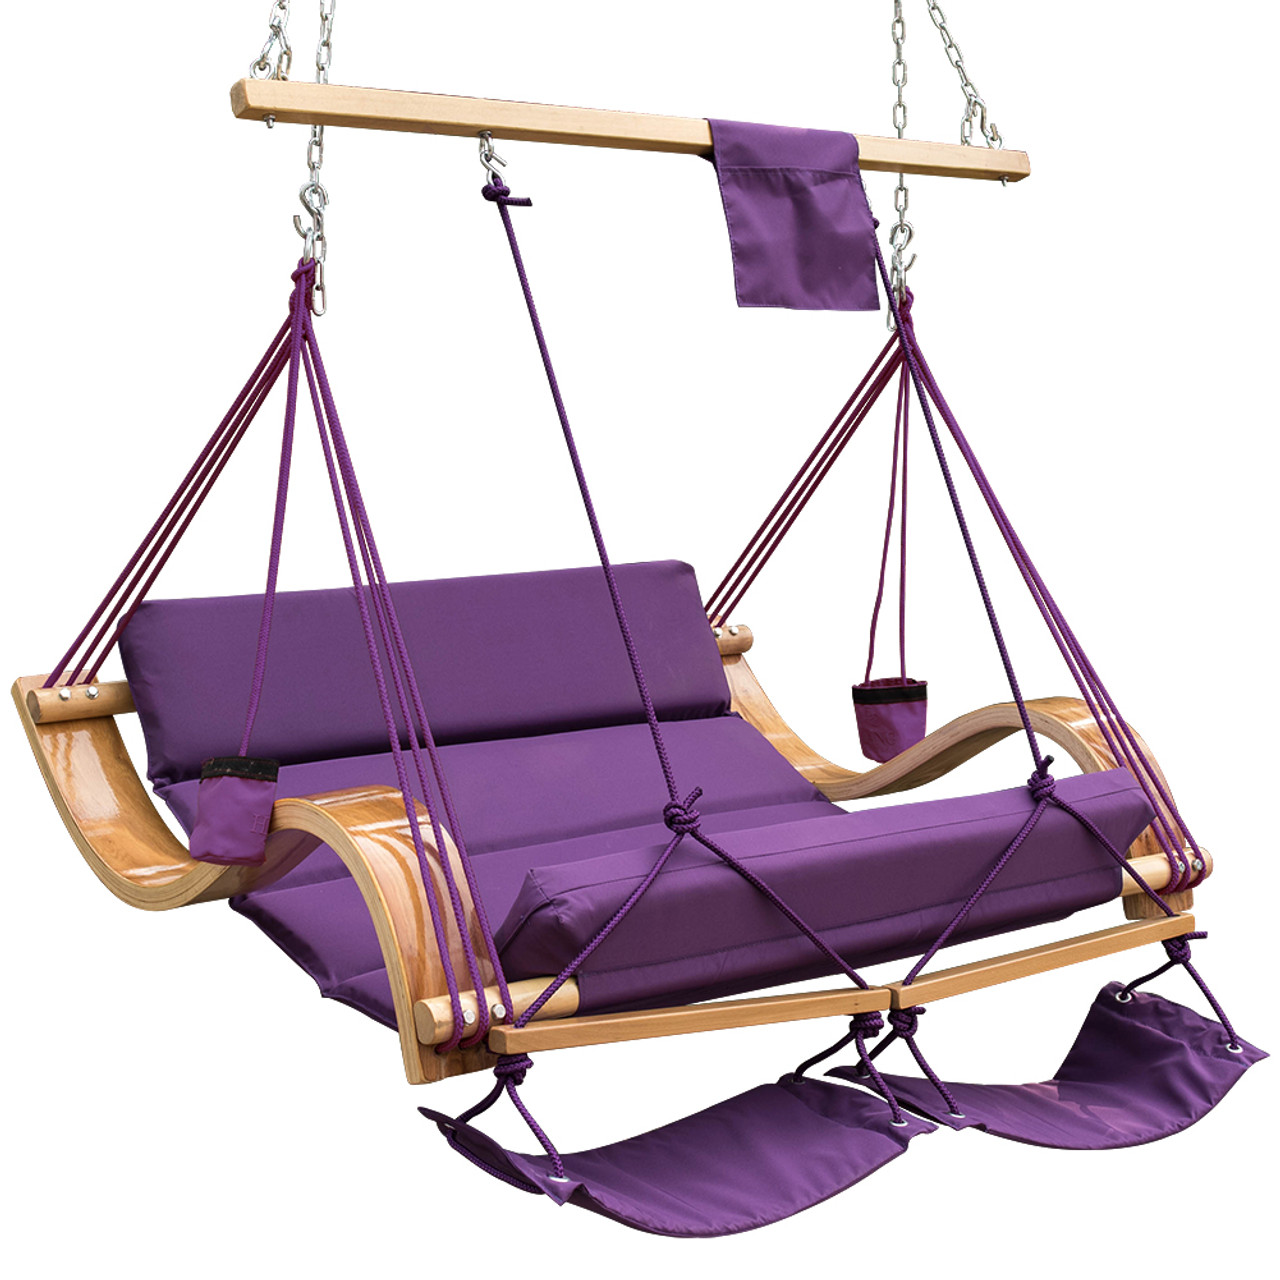 Patio Garden Outdoor Deluxe Oversized Double Hanging Hammock Lounger